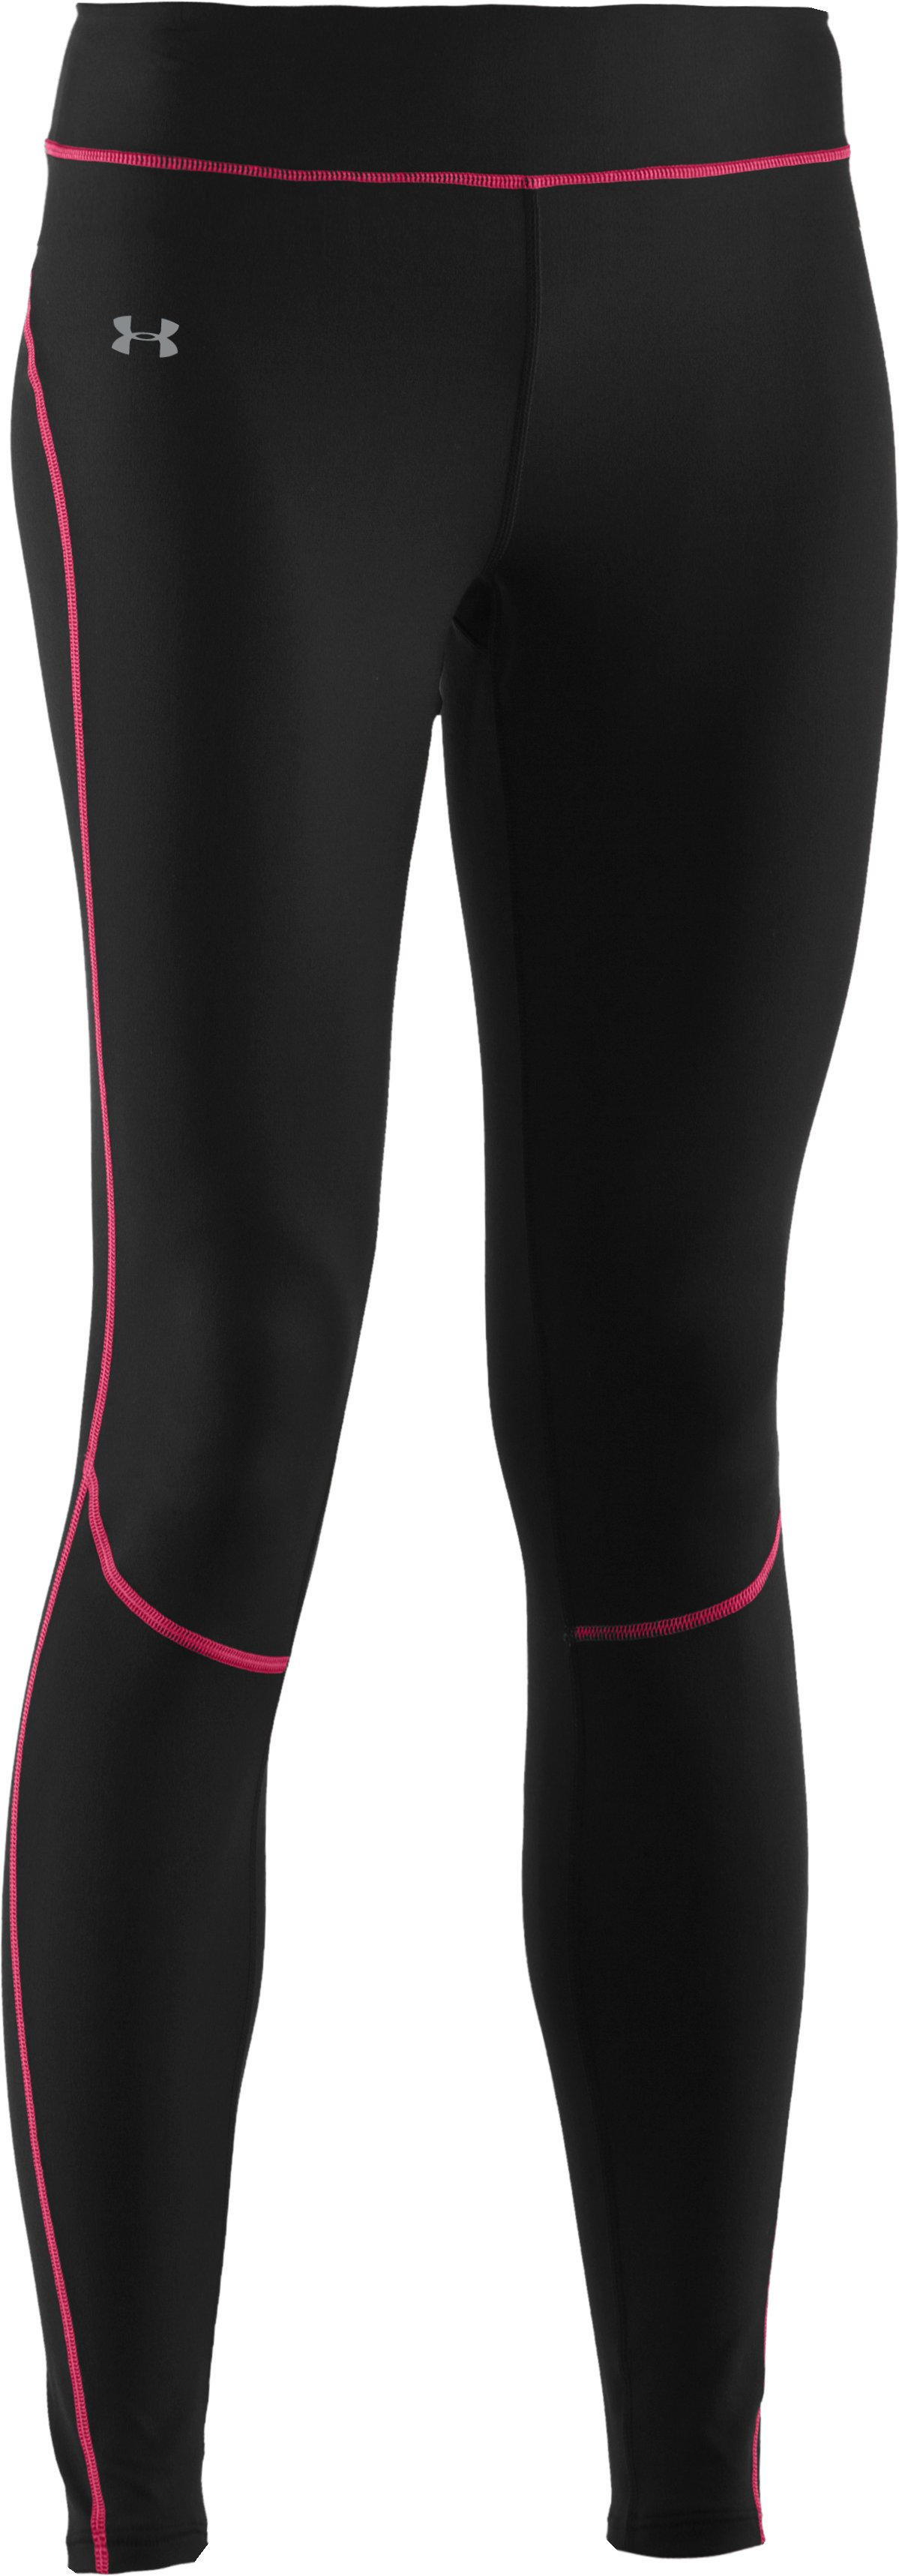 Women's AllSeasonGear® Run Fitted Tights, Black